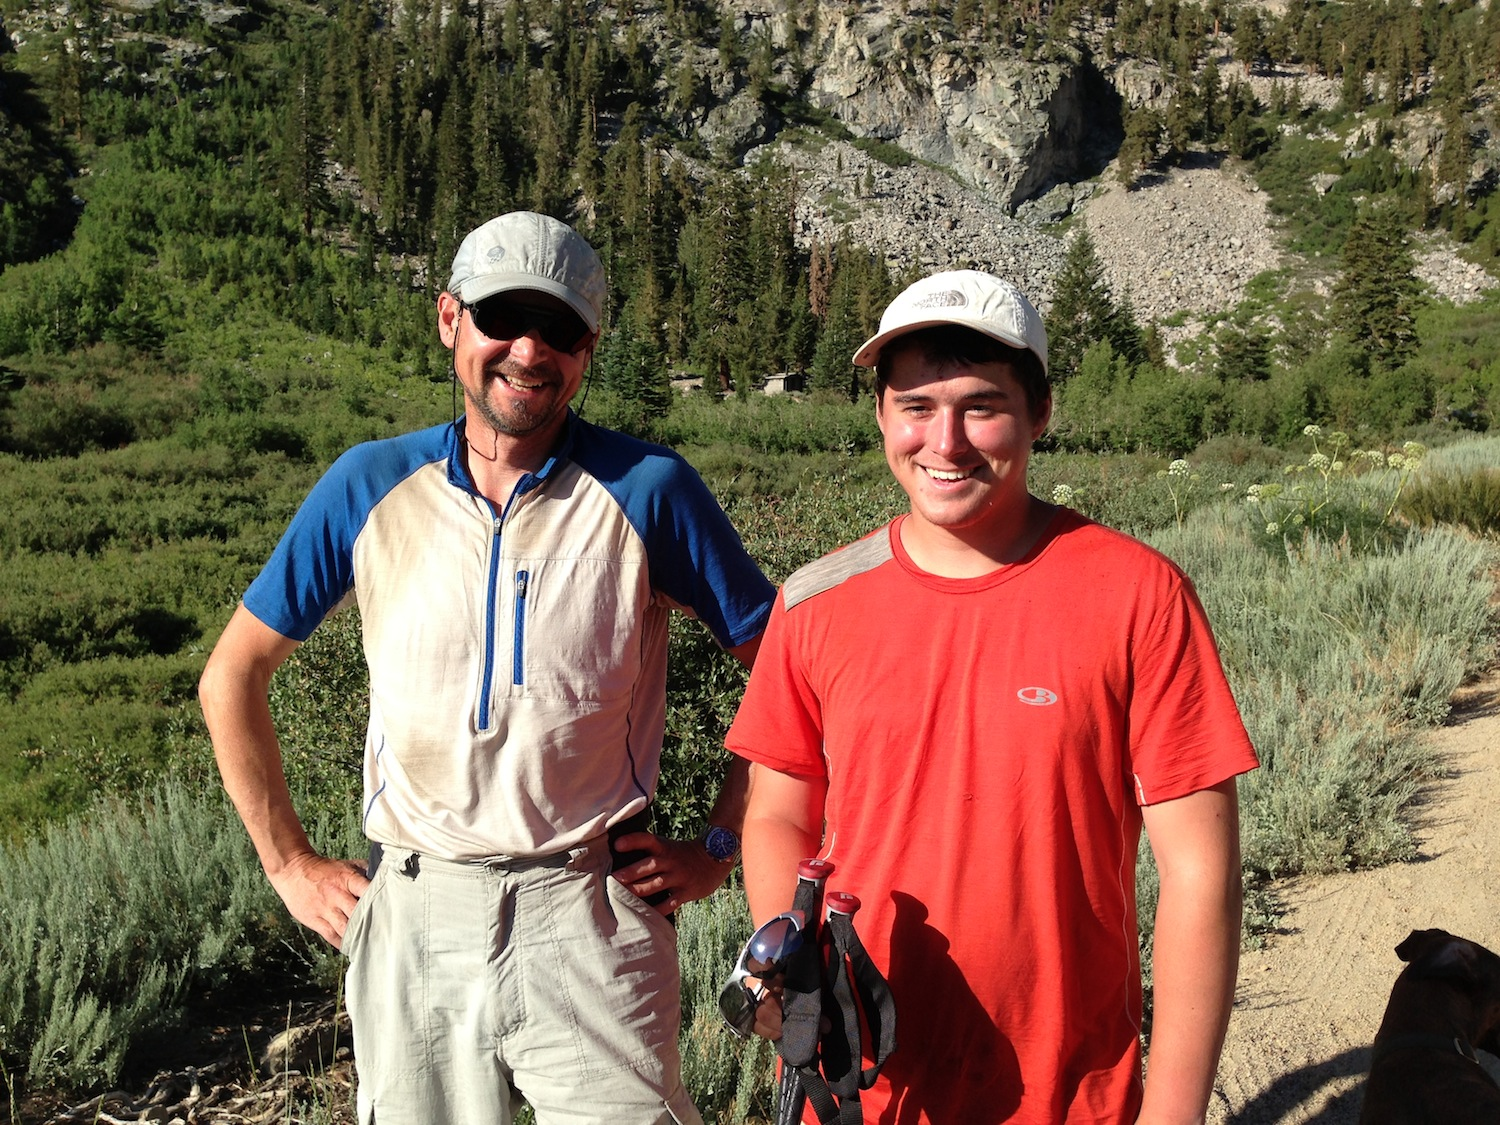 JMT demons Peter and Damian from Wisconsin. The father-son duo have done the JMT 20 times between them.